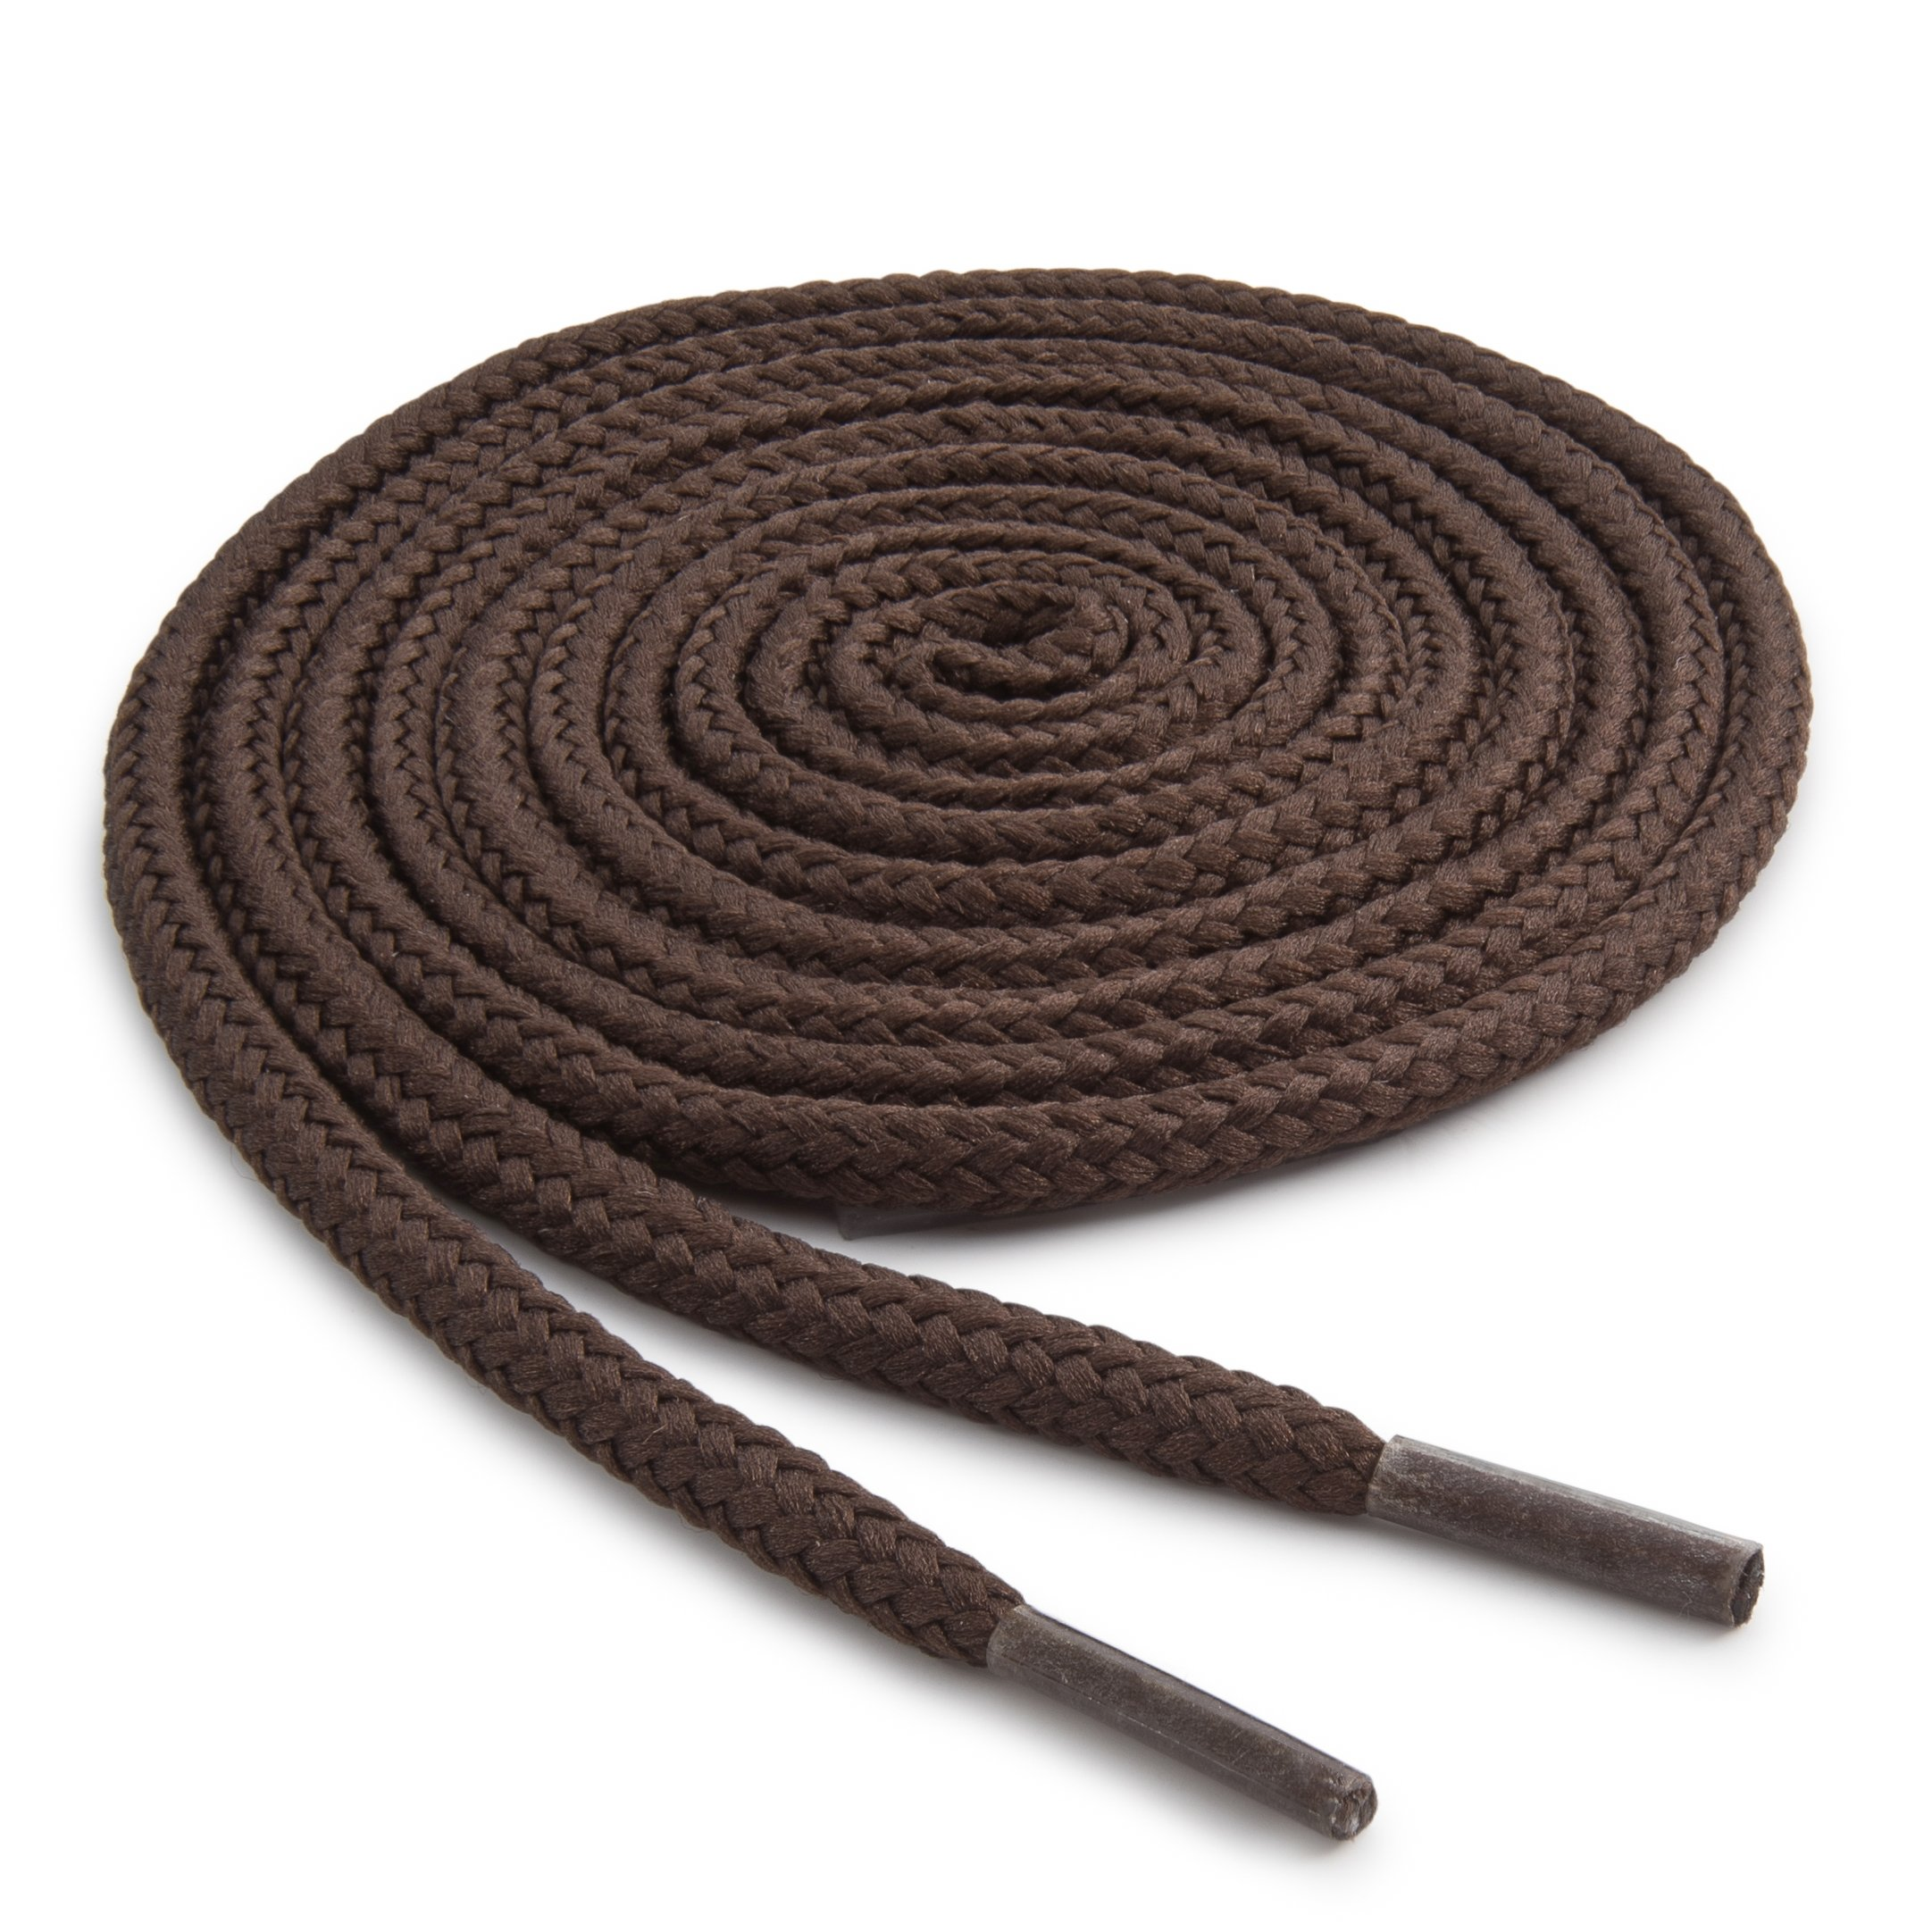 OrthoStep Round Athletic Brown 72 inch - Shoes and Sports Laces - Shoelaces 2 Pair Pack